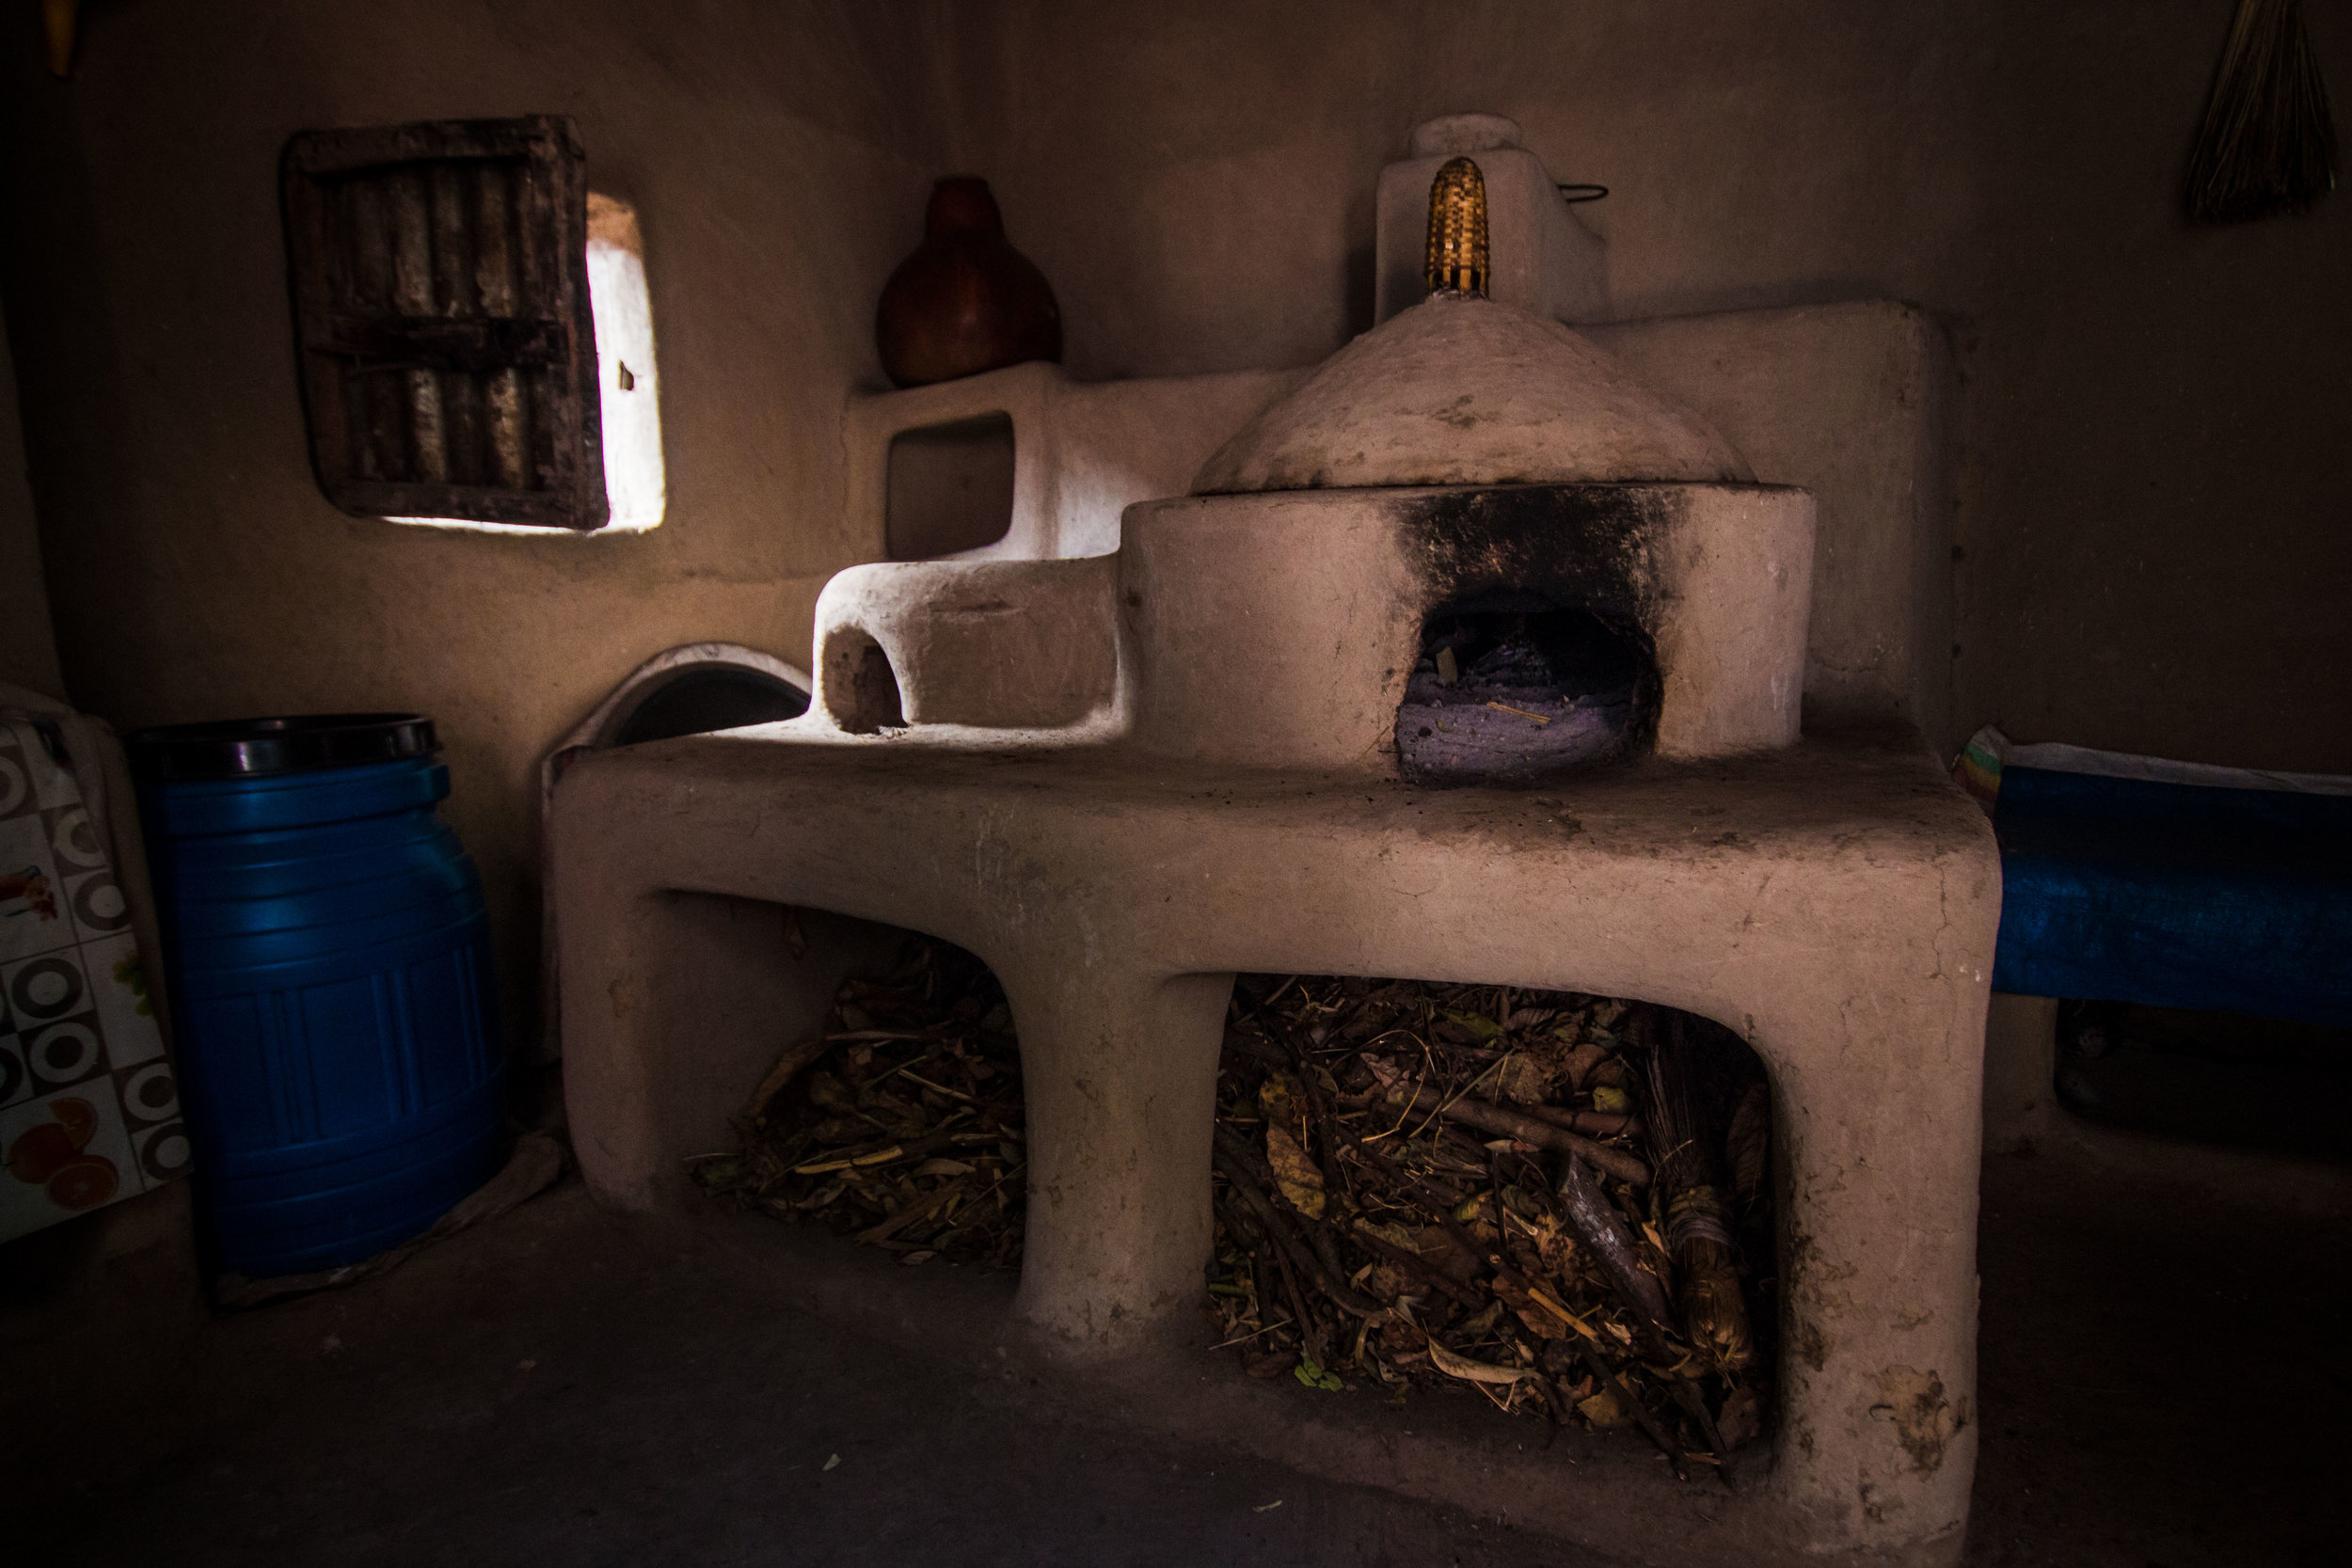 An innovative smokeless stove designed by the guru himself, for cooking injera (a sourdough-risen, spongy flatbread made out of teff flour) .